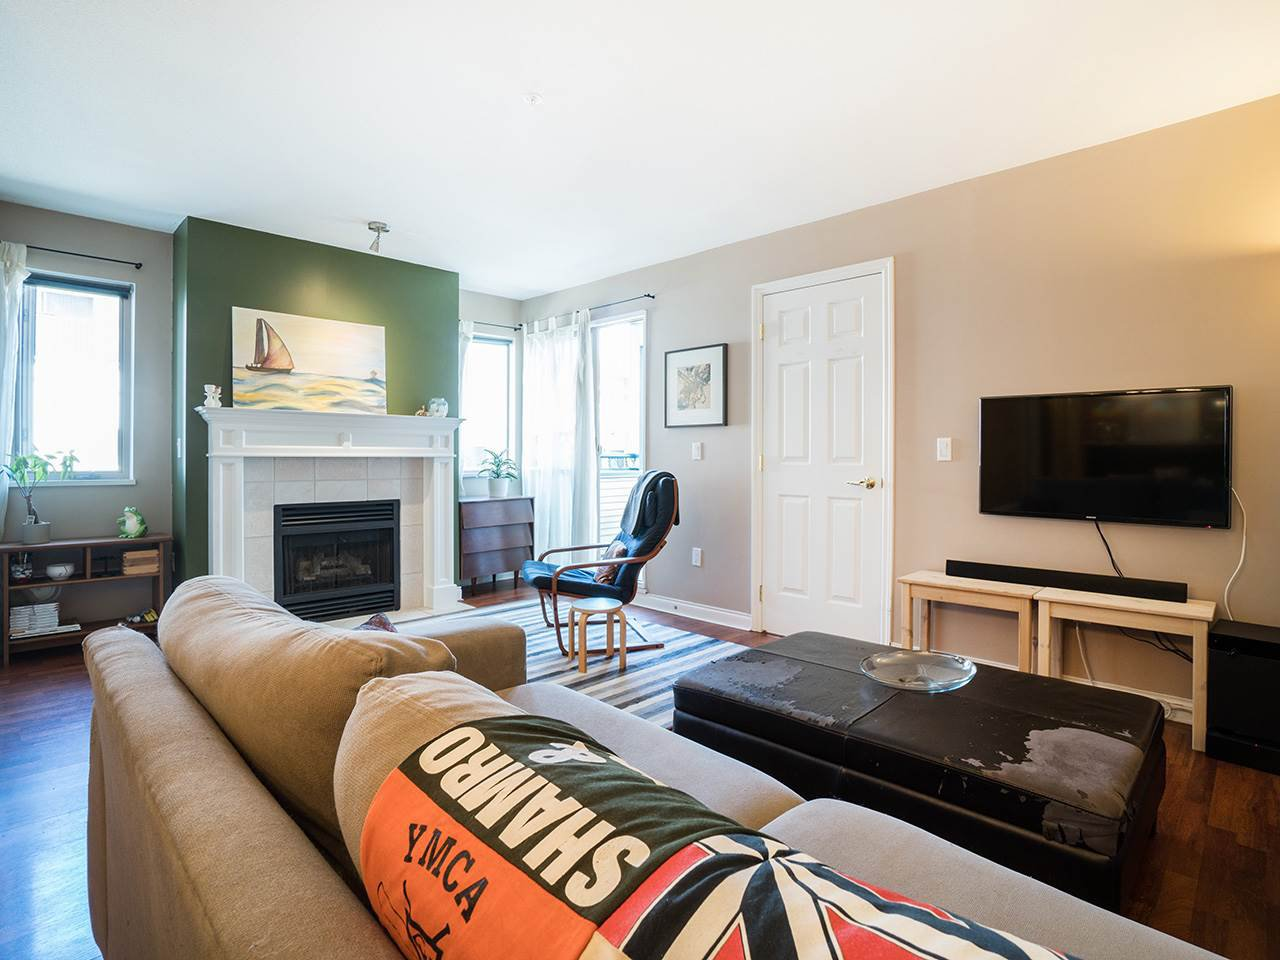 """Main Photo: 207 688 E 16TH Avenue in Vancouver: Fraser VE Condo for sale in """"Vintage Eastside / Cedar Cottage"""" (Vancouver East)  : MLS®# R2184492"""